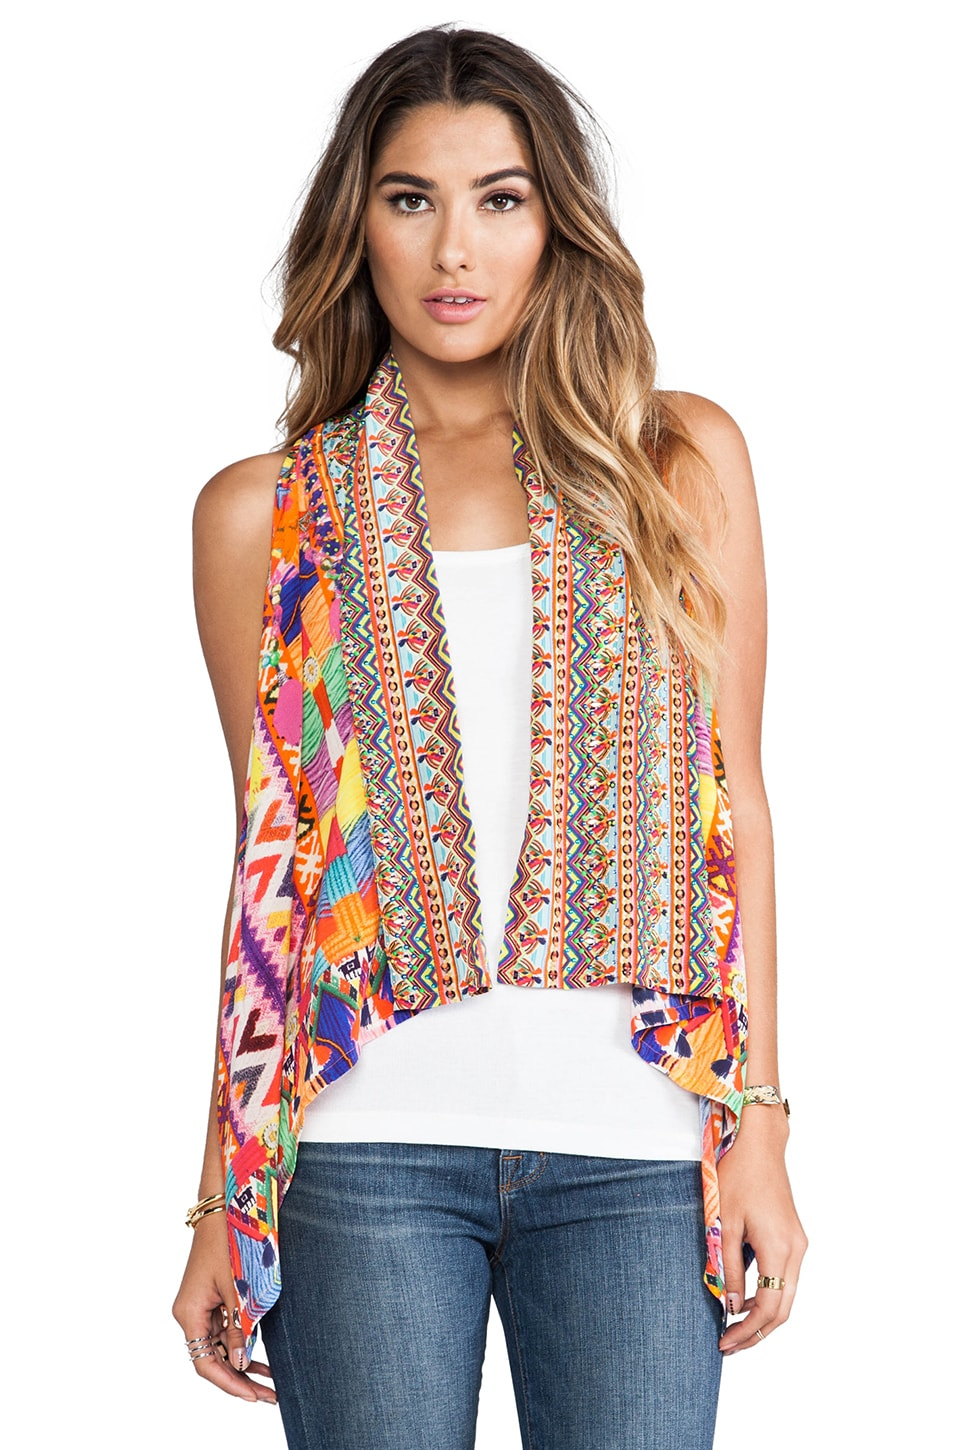 Camilla Worry Dolly Waistcoat Vest in Multi